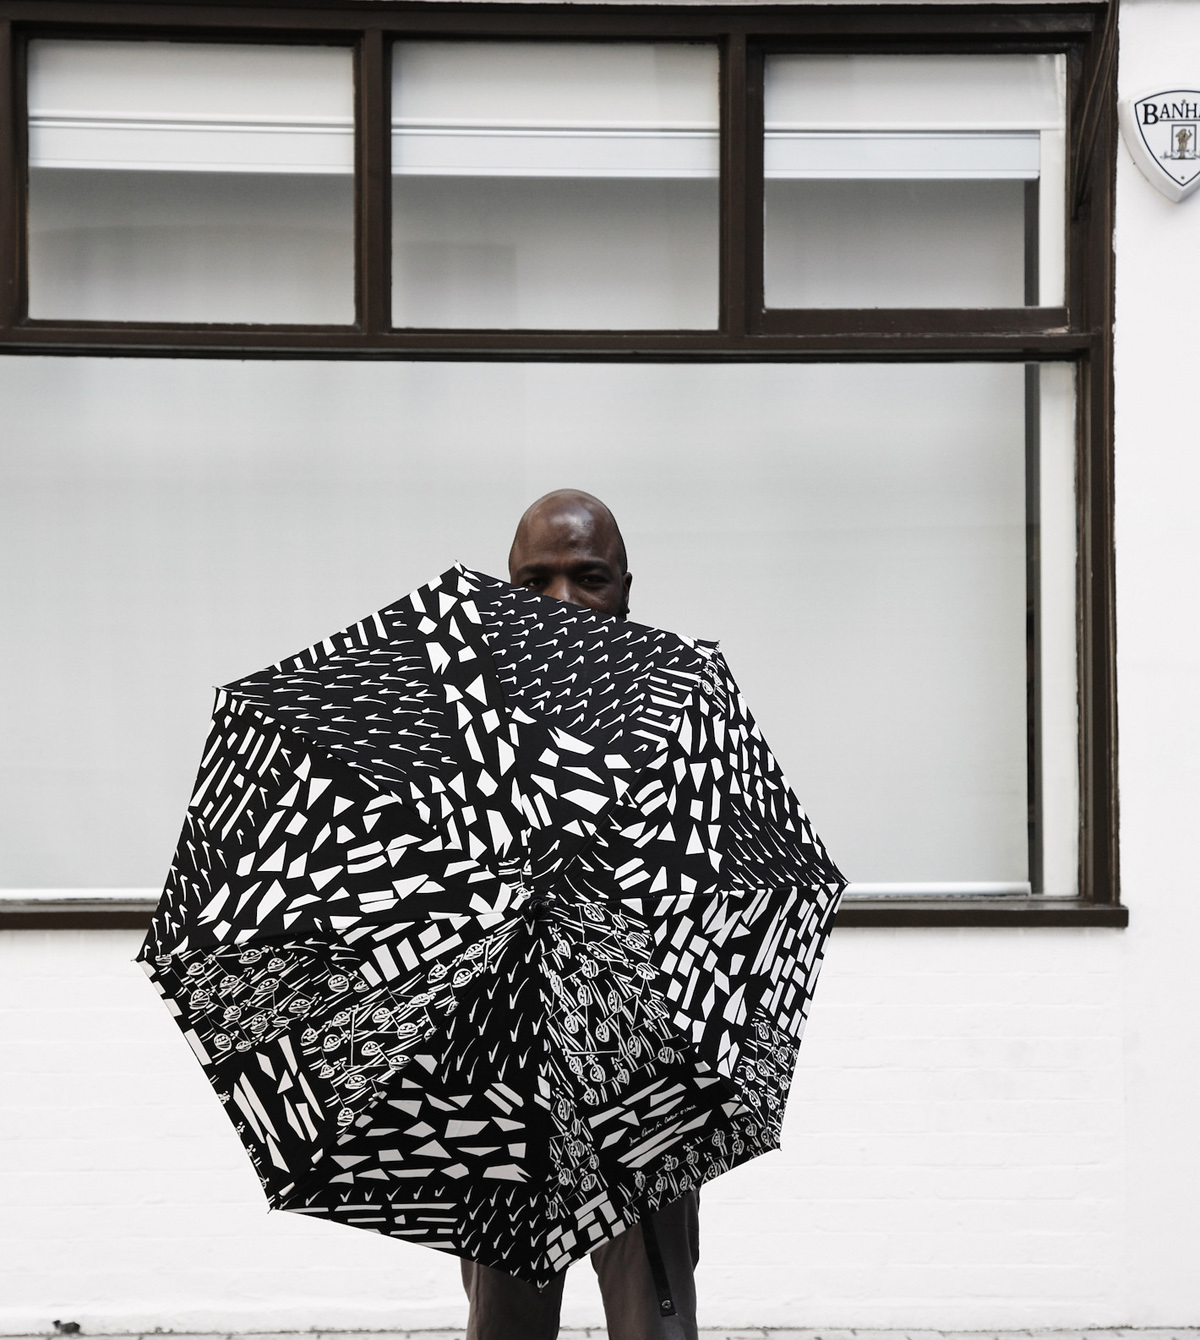 Duro Olowu, 'Black and white umbrella'. Edition of 1,000. Published by Outset. £65